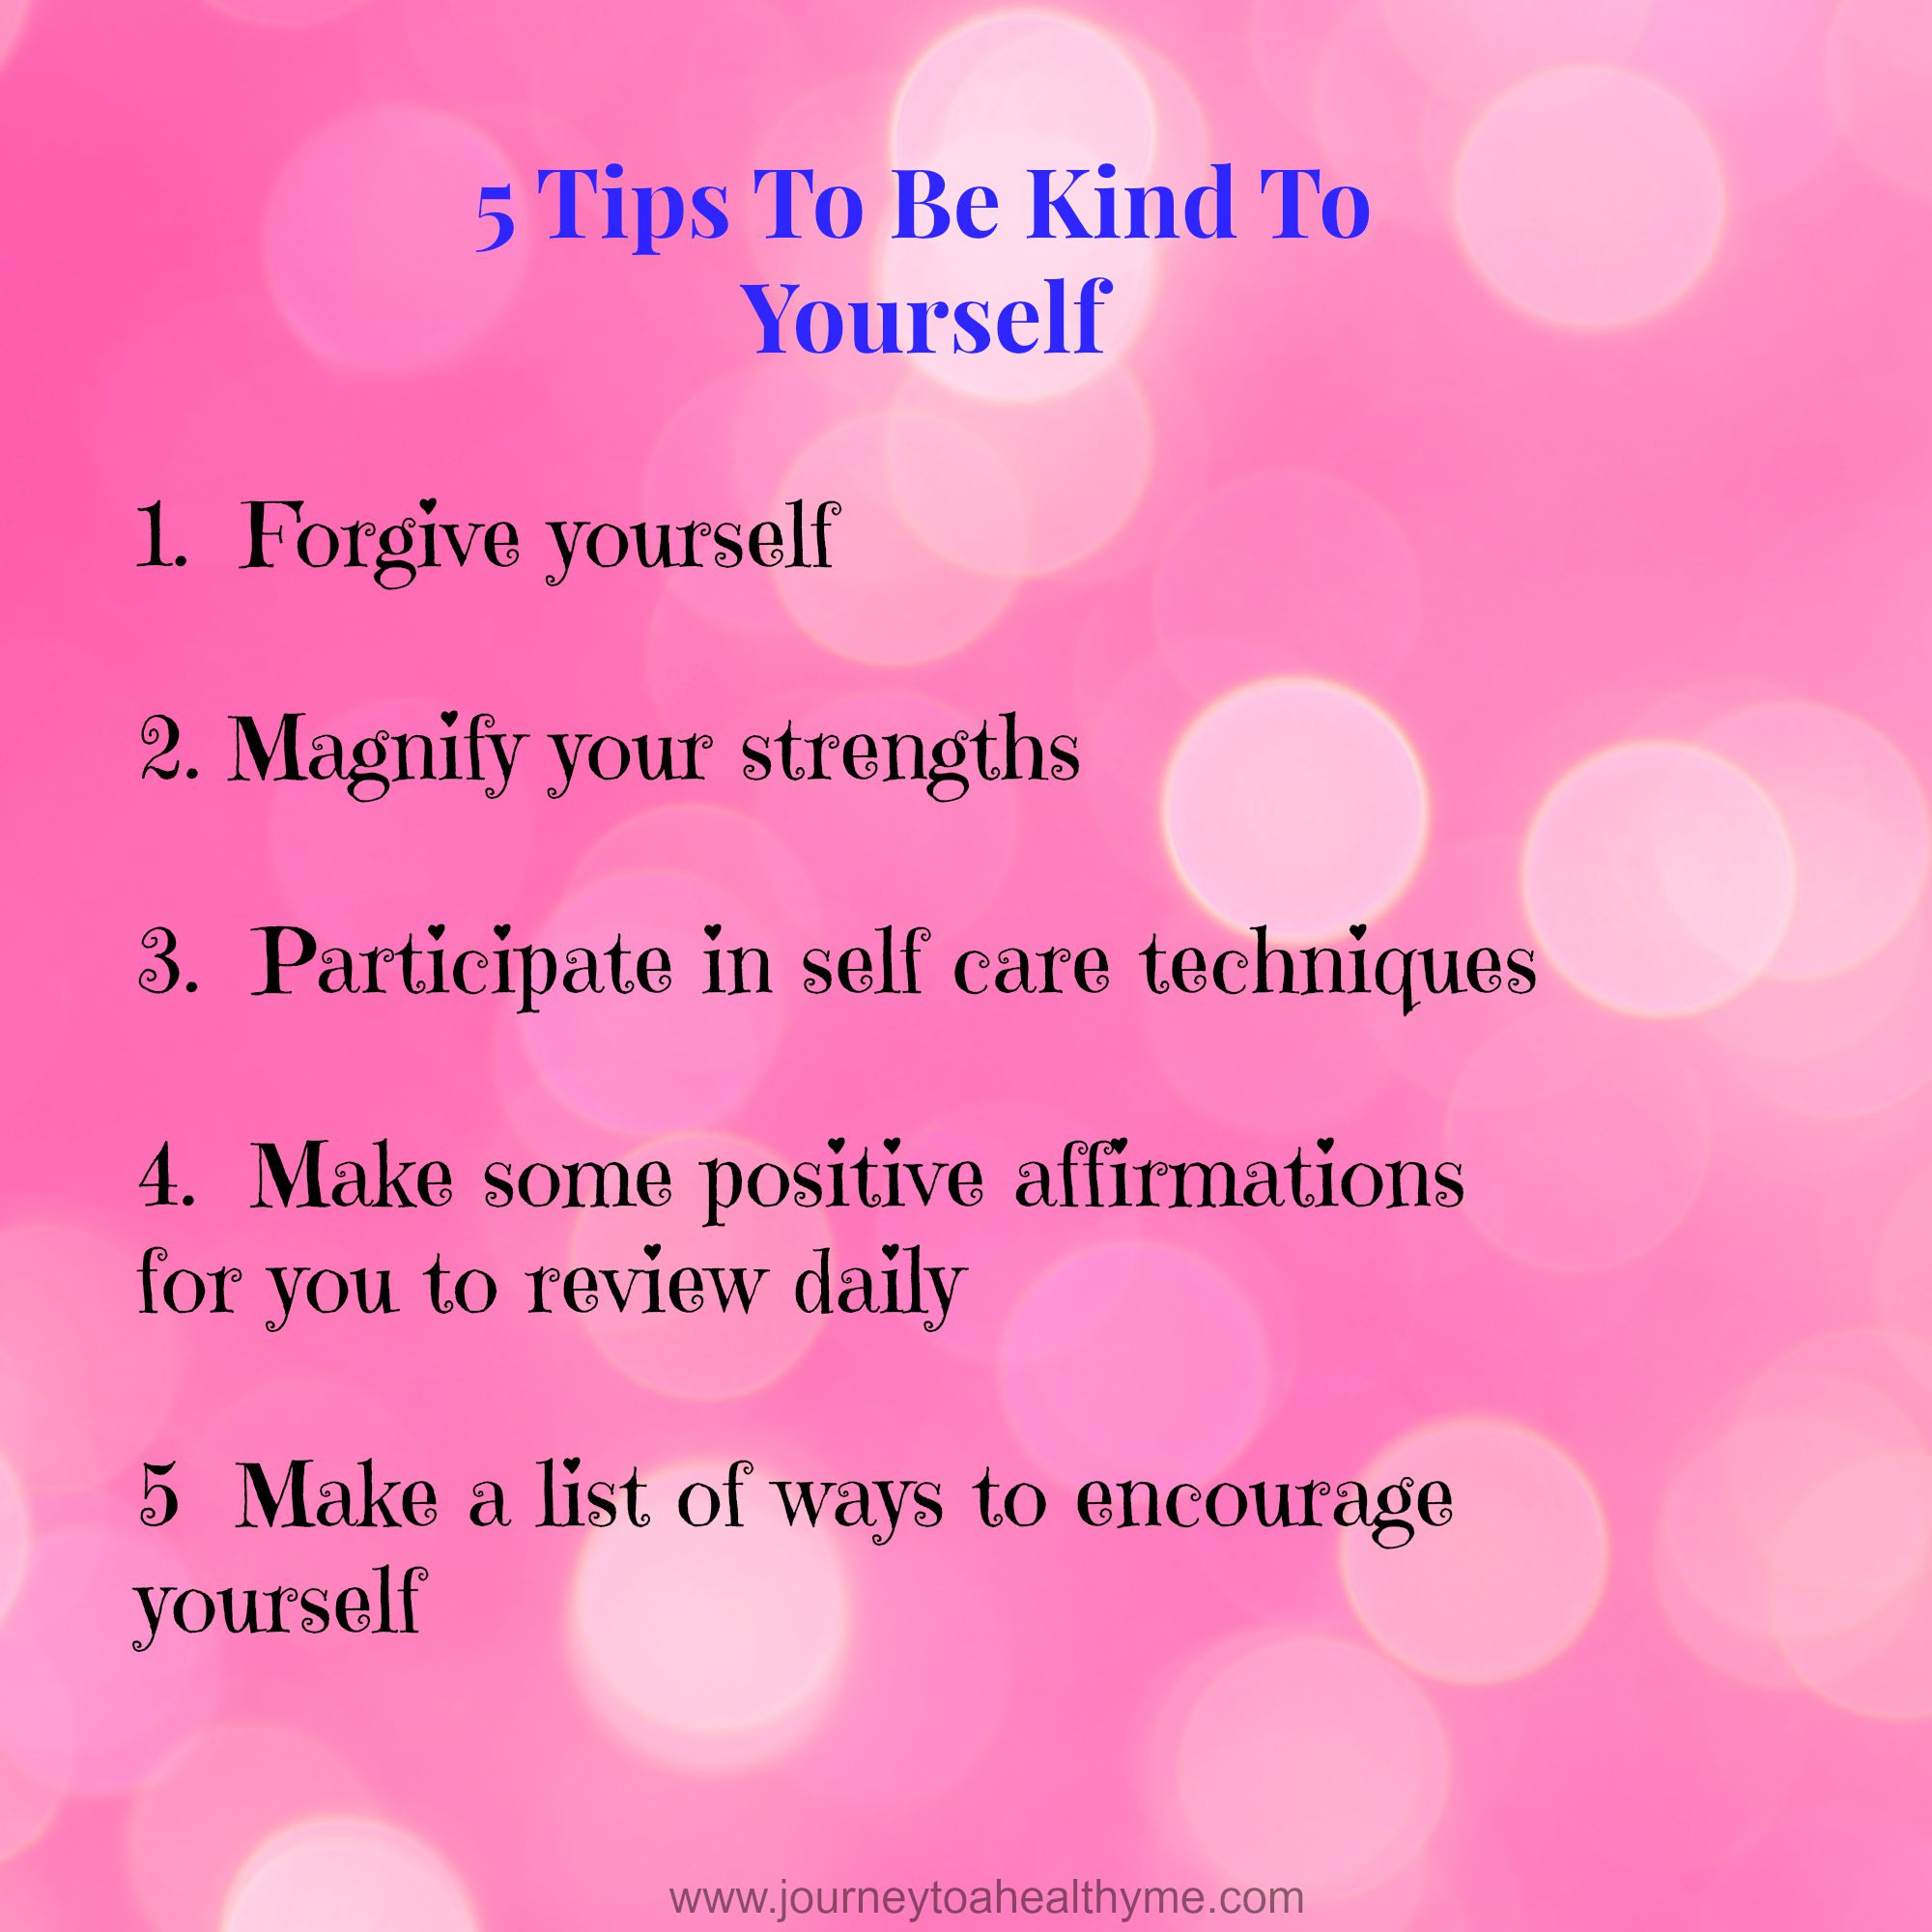 5 Steps To Be Kind To Yourself